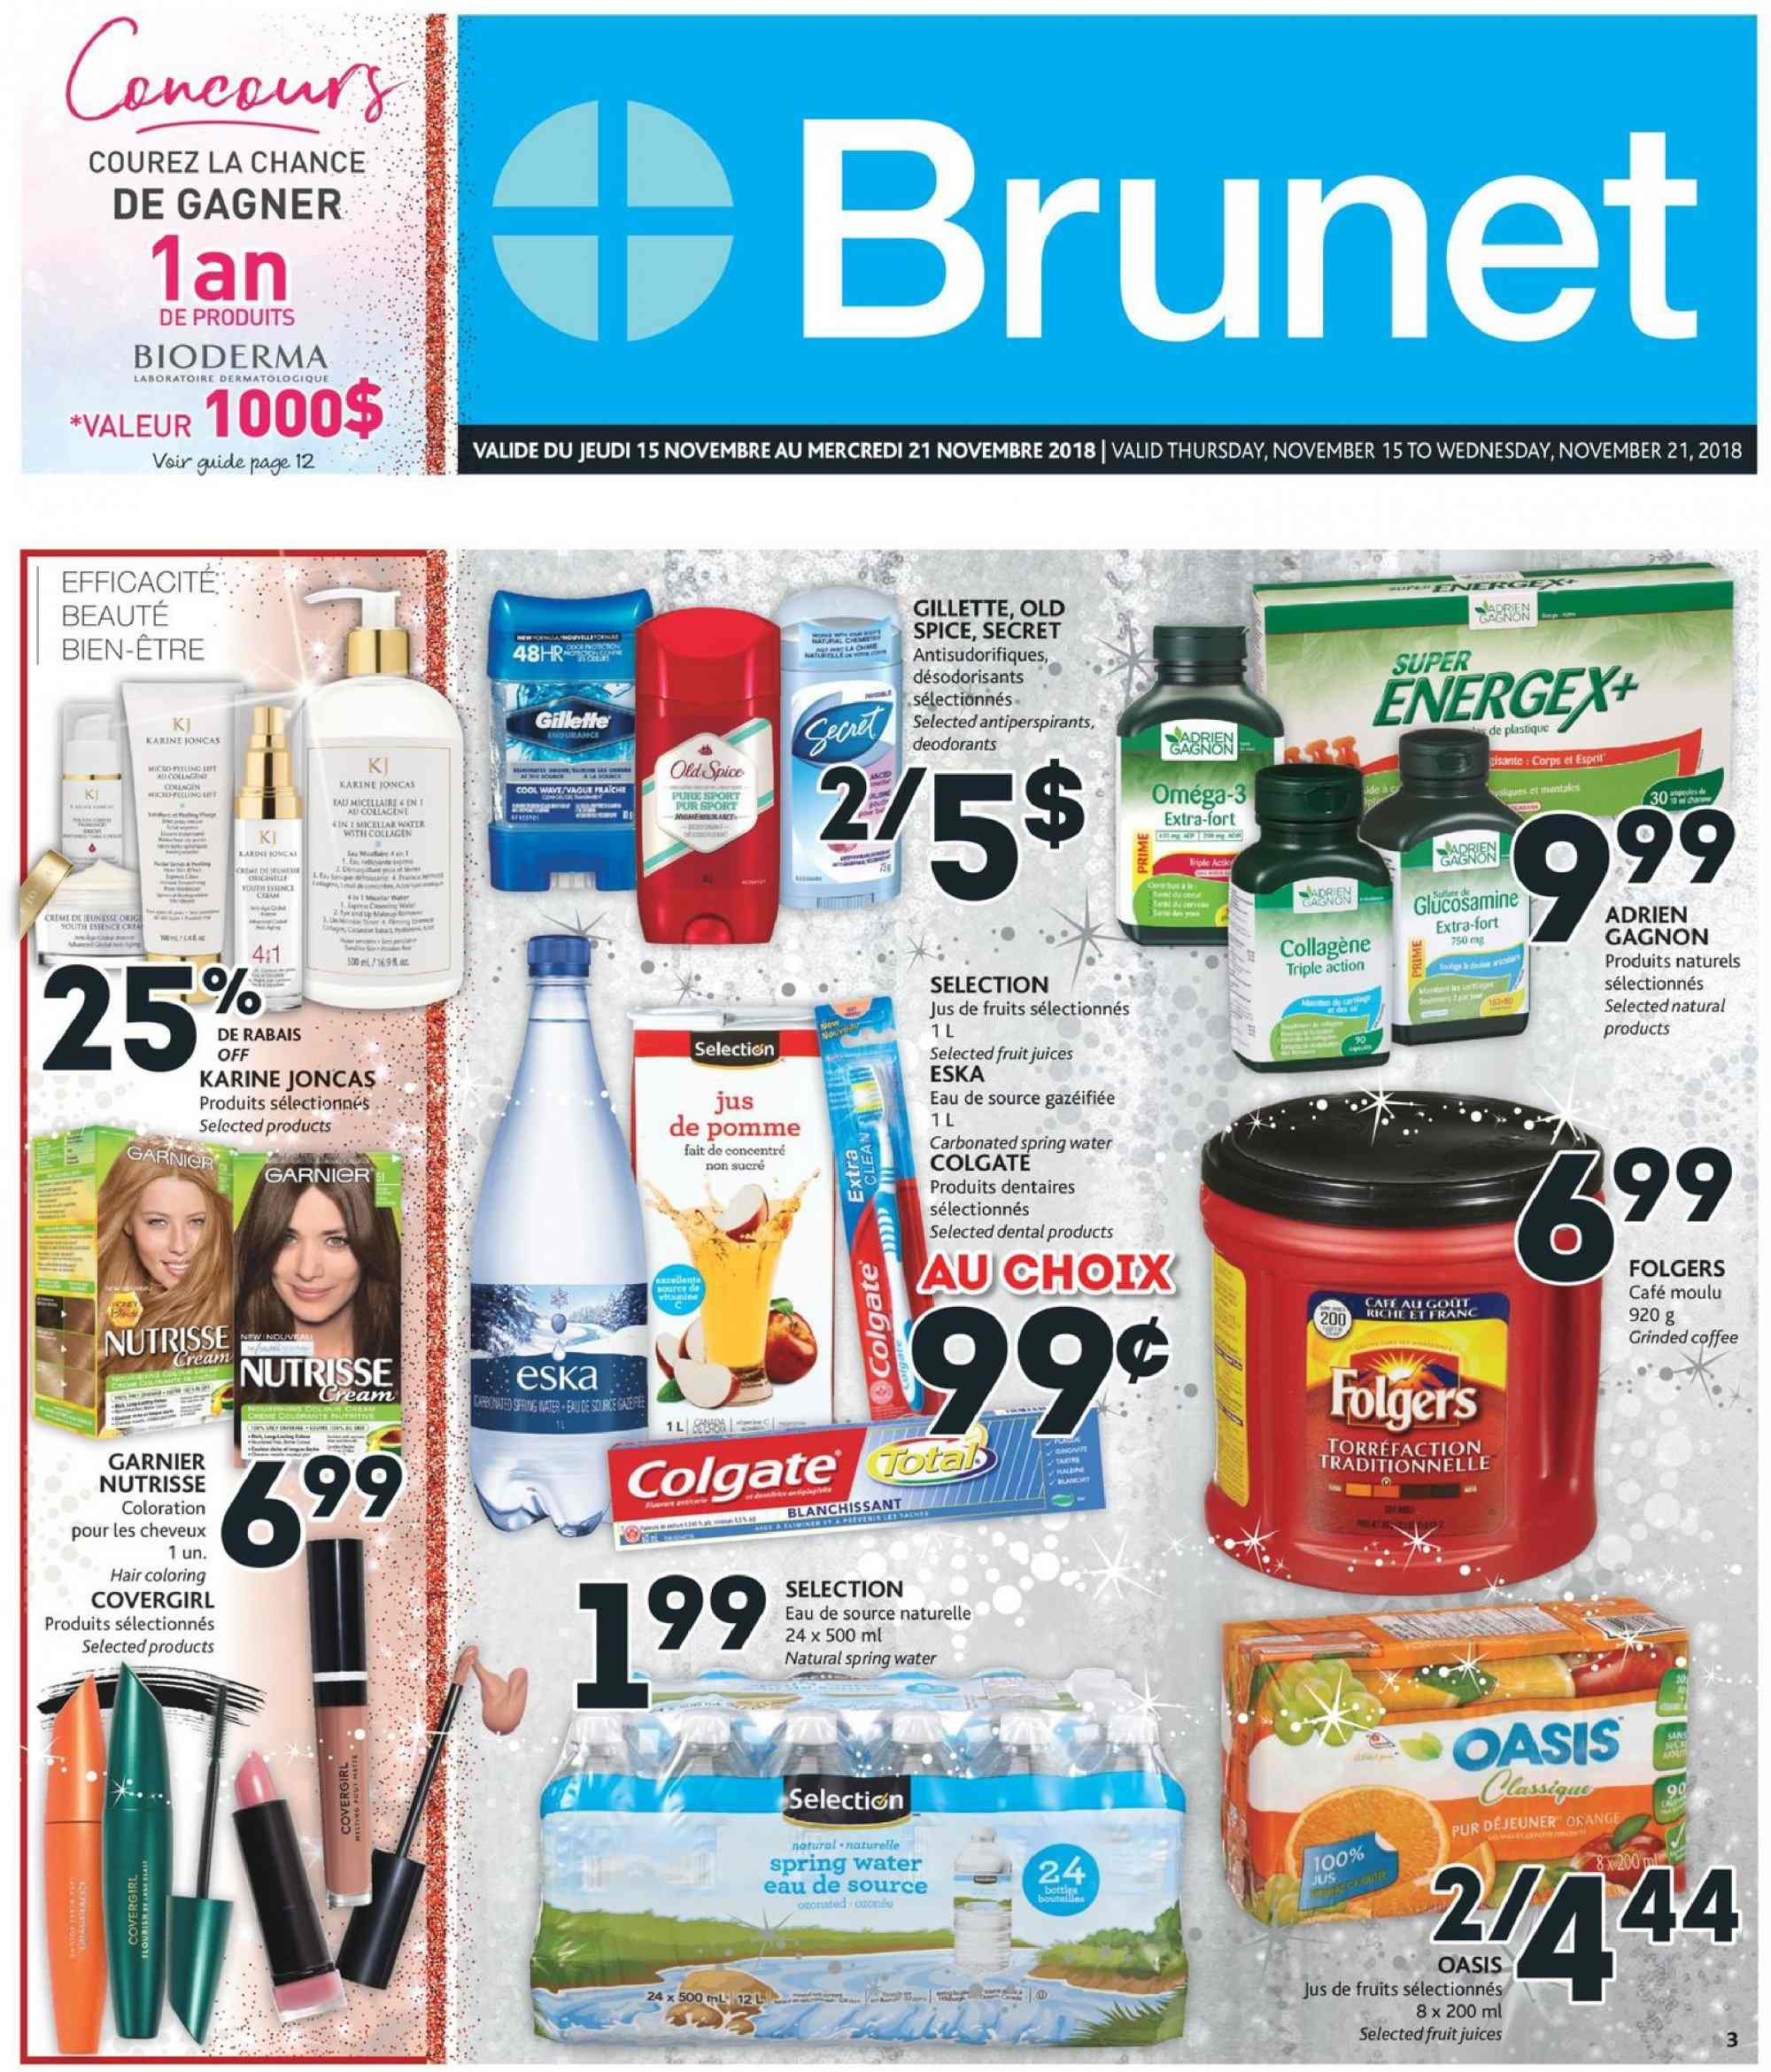 Brunet Flyer - November 15, 2018 - November 21, 2018 - Sales products - water. Page 1.